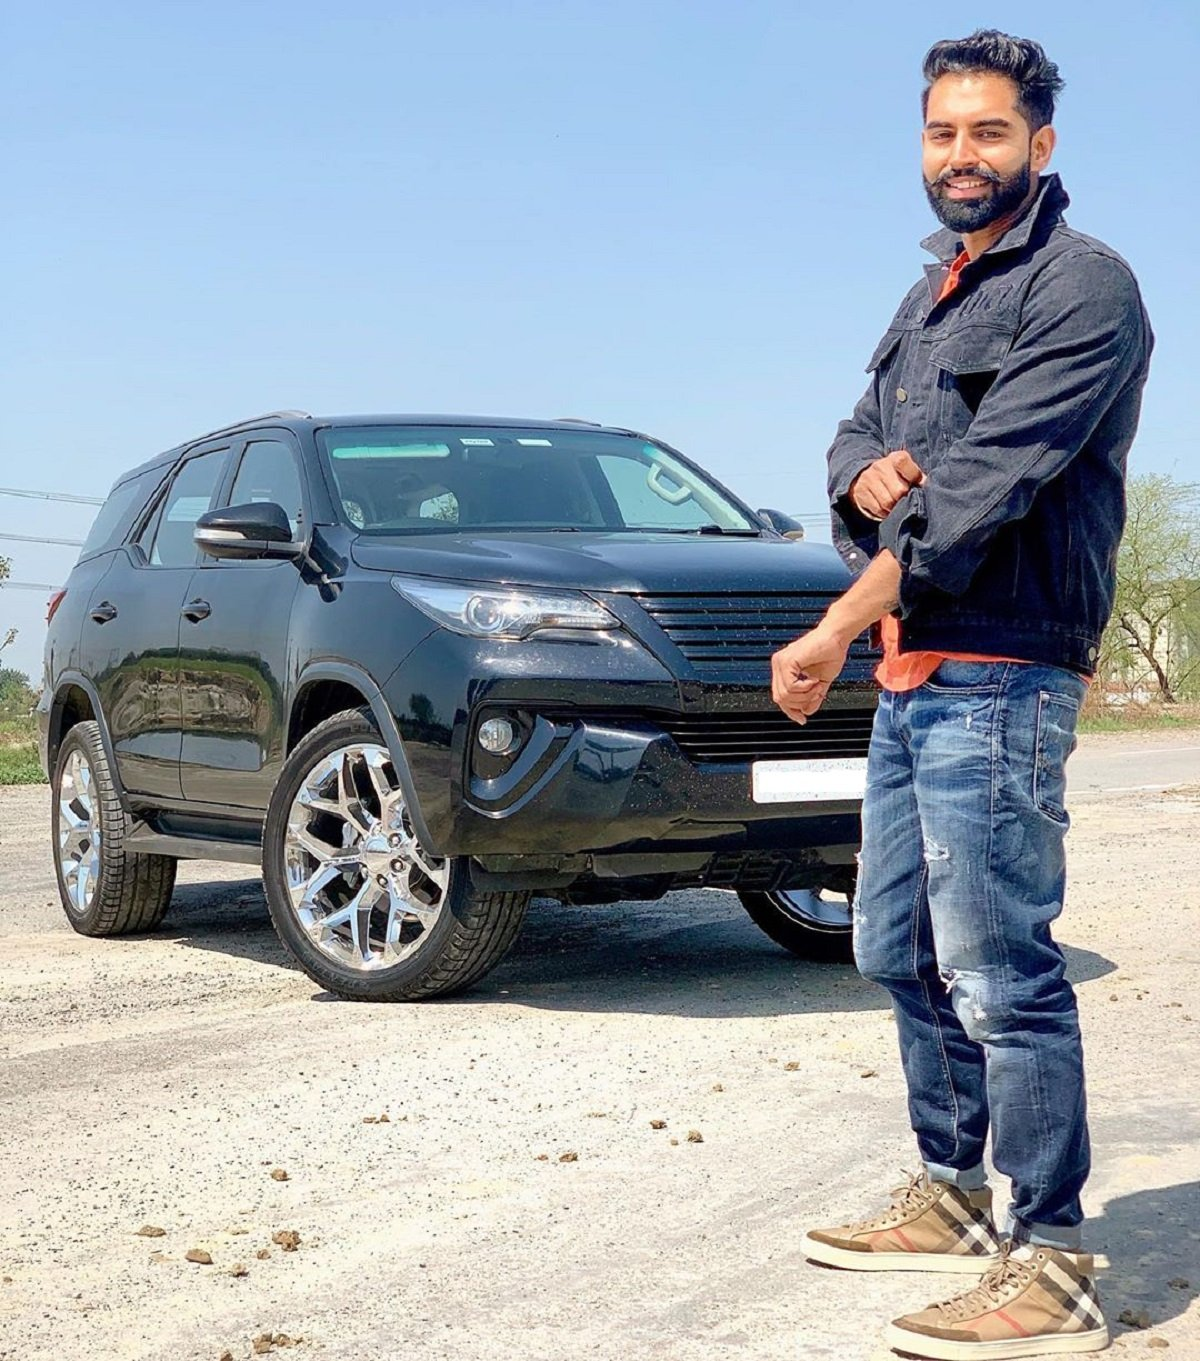 Parmish Verma's Toyota Fortuner Wears Funky 22-inch Rims - Looks DOPE